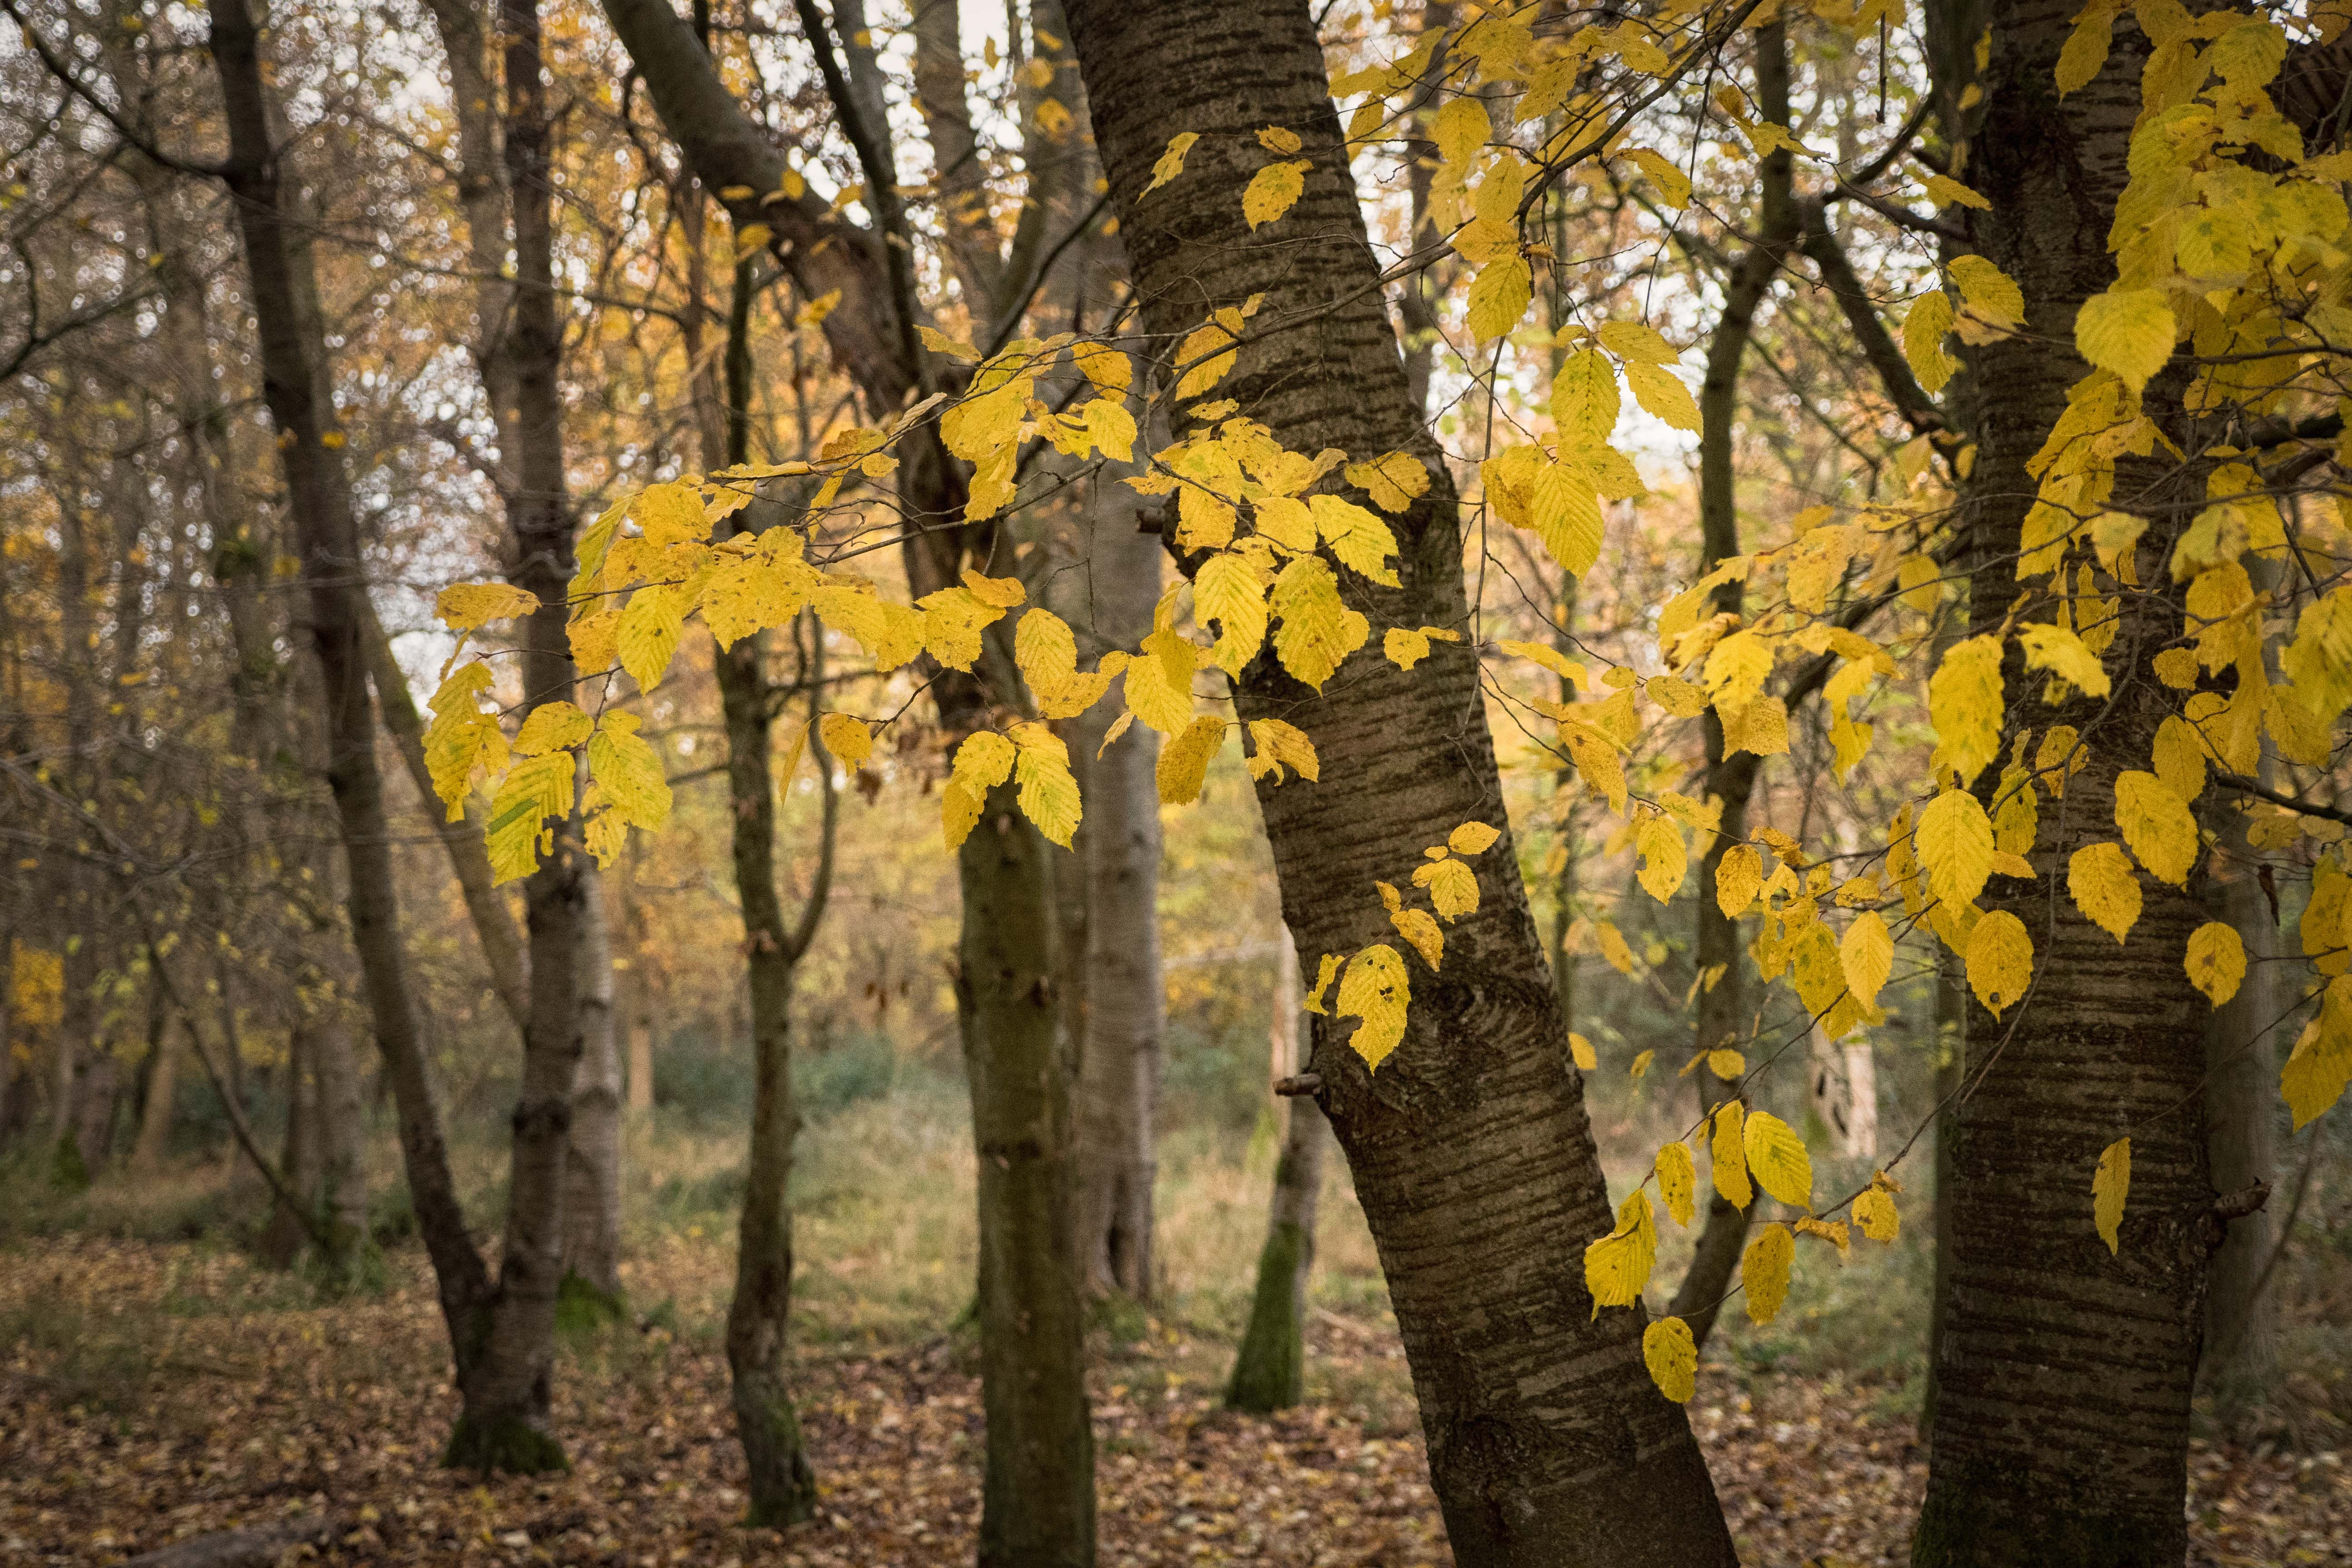 Autumn leaves are beautiful but they can also cause many problems for spouting and guttering.